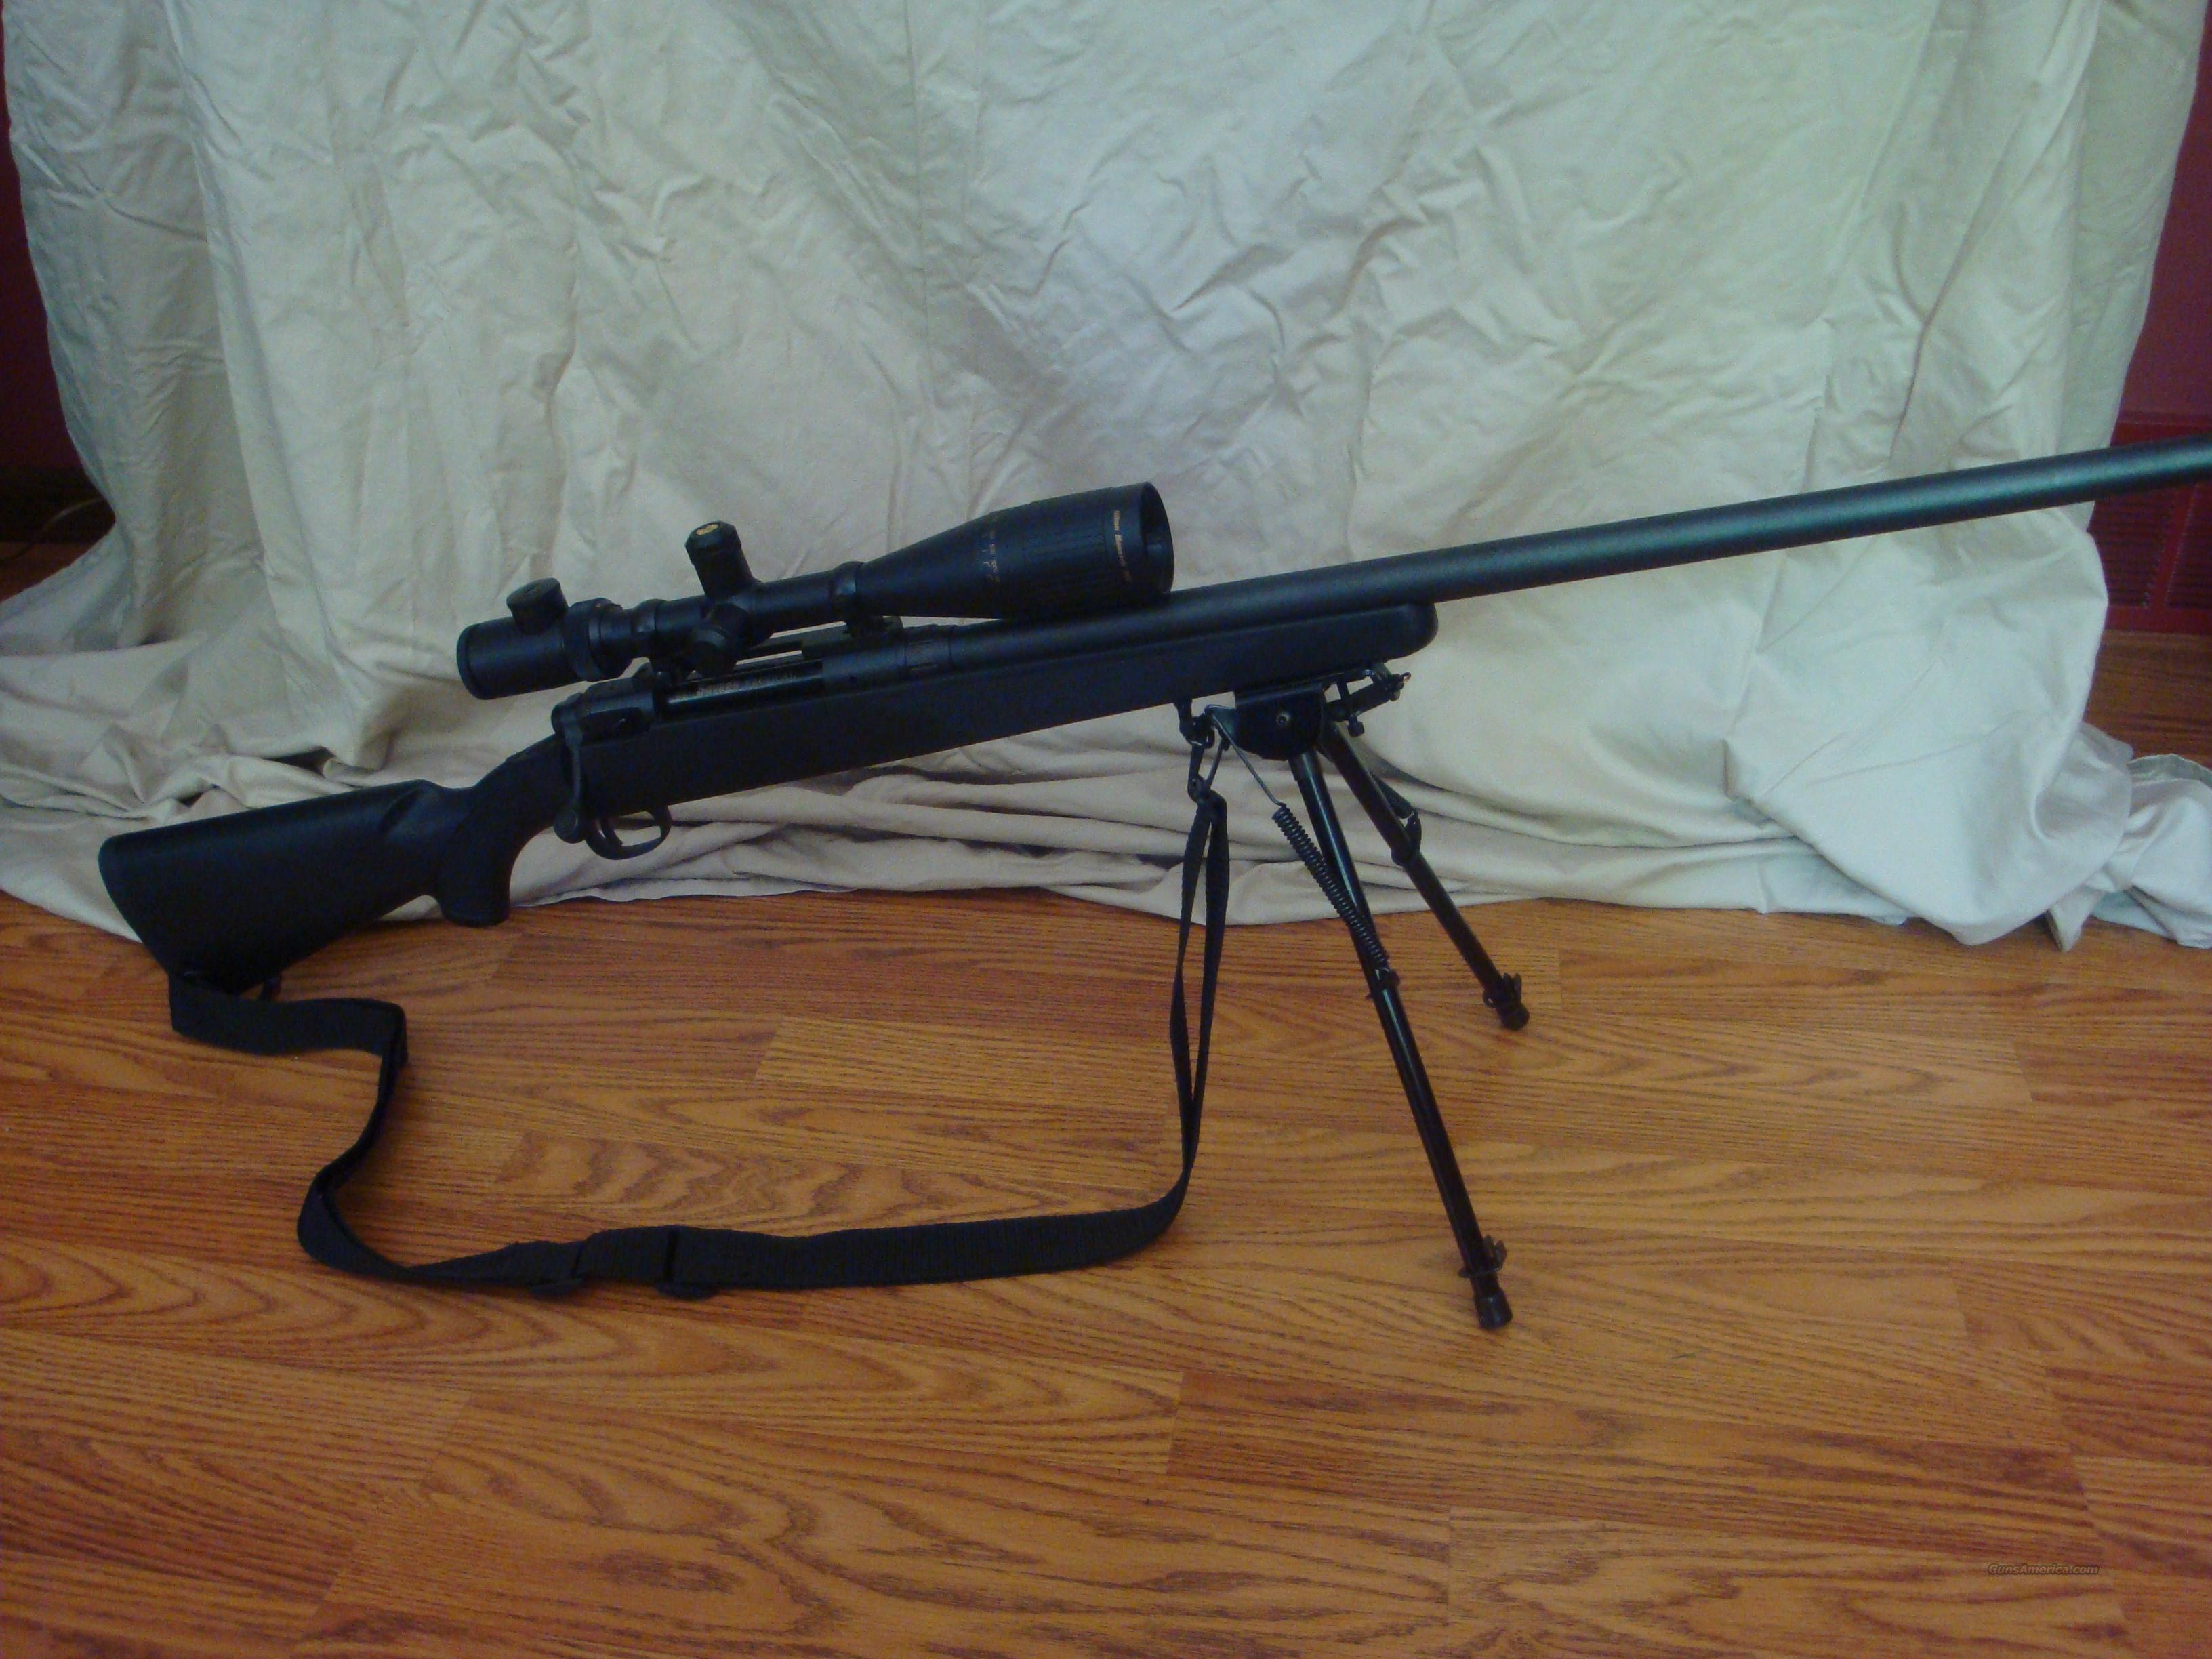 Savage 110 Tactical Police Counter Sniper Rifle   New Price  Guns > Rifles > Savage Rifles > Standard Bolt Action > Tactical